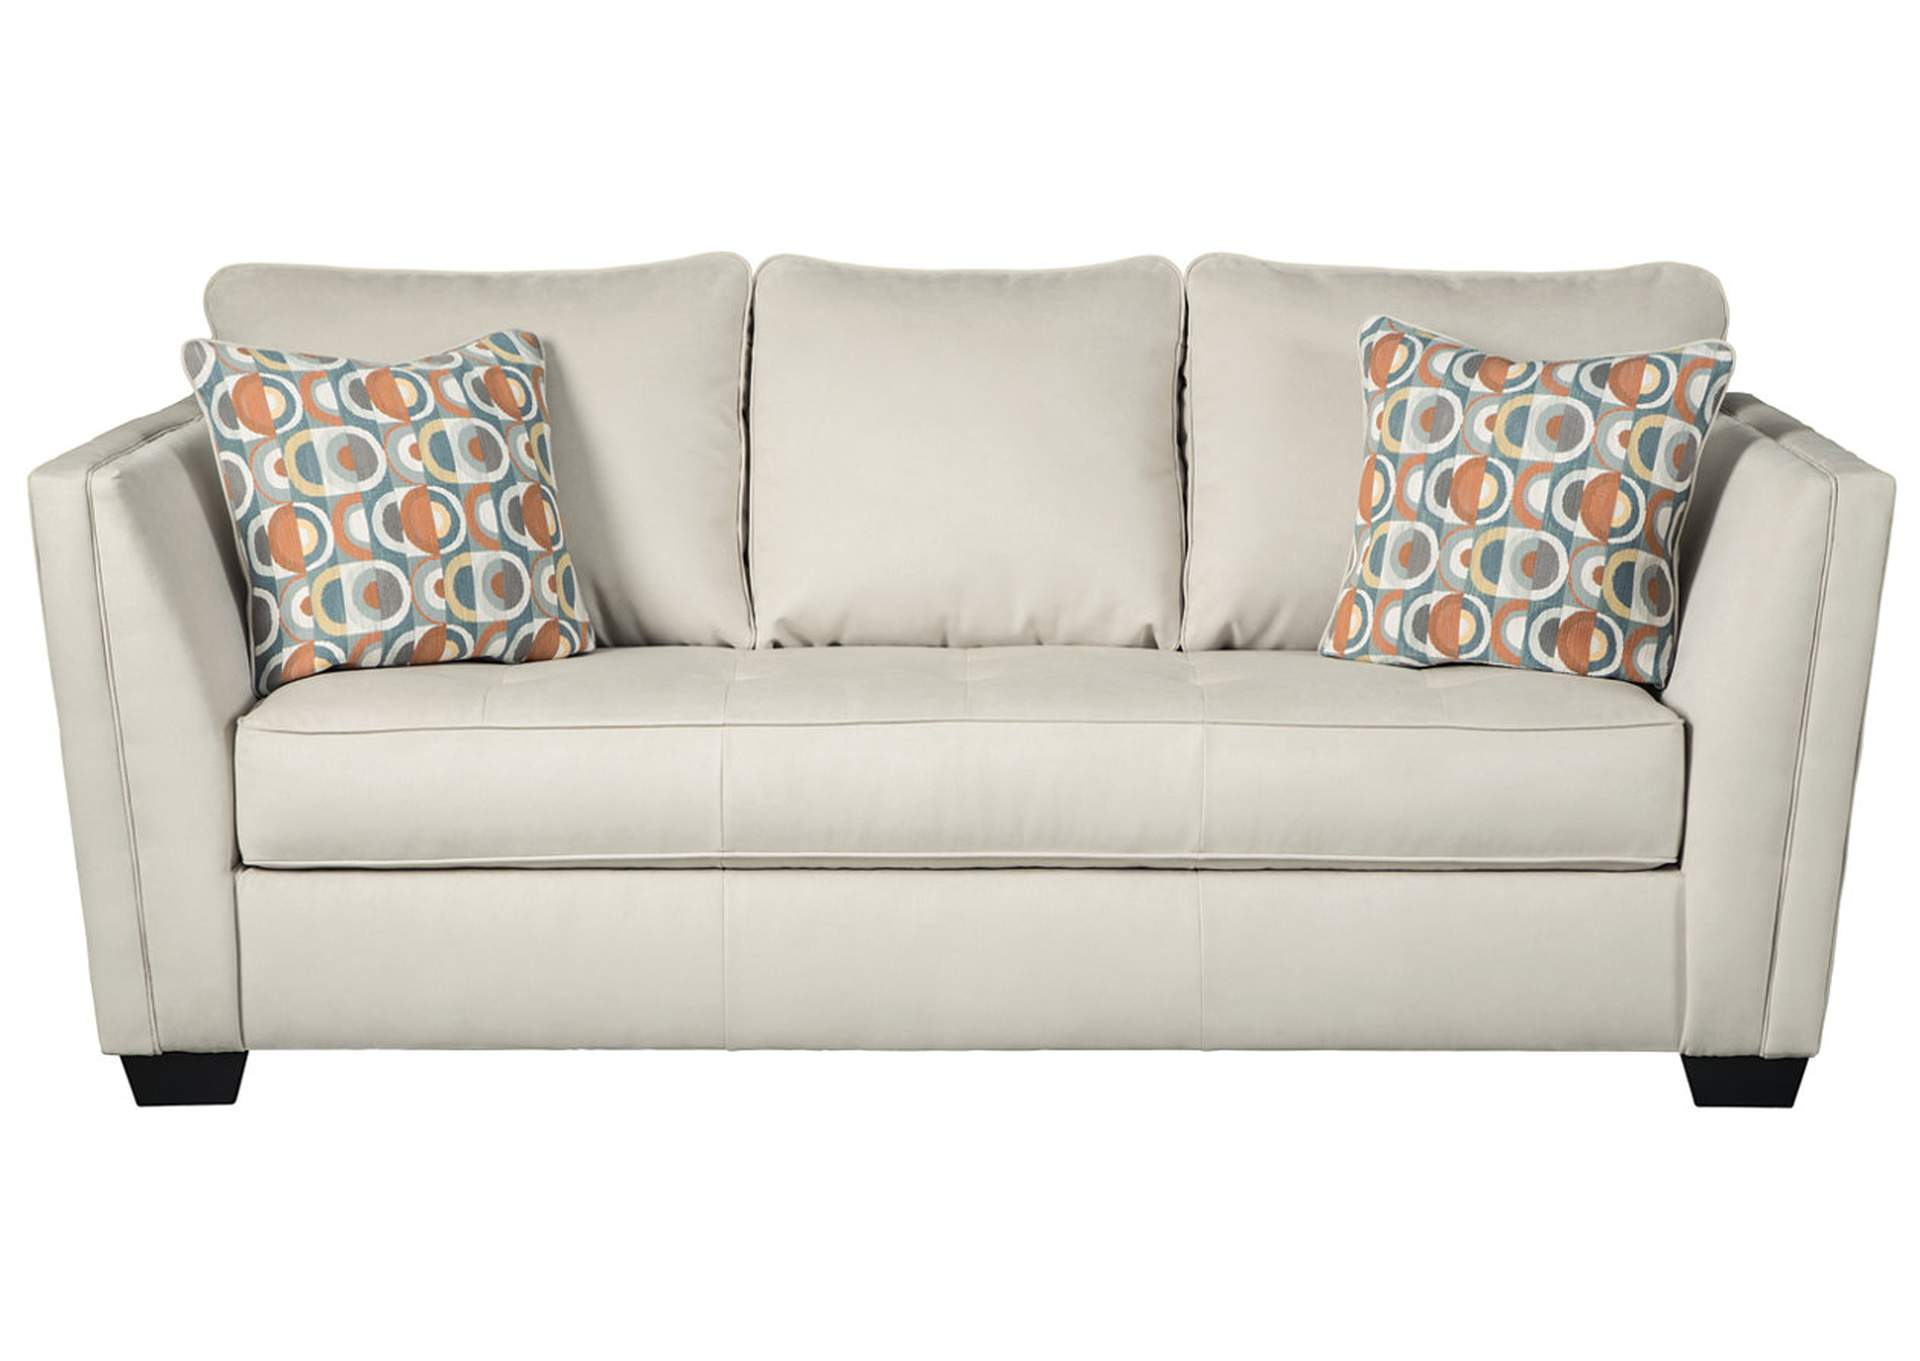 Filone Ivory Sofa,Signature Design By Ashley